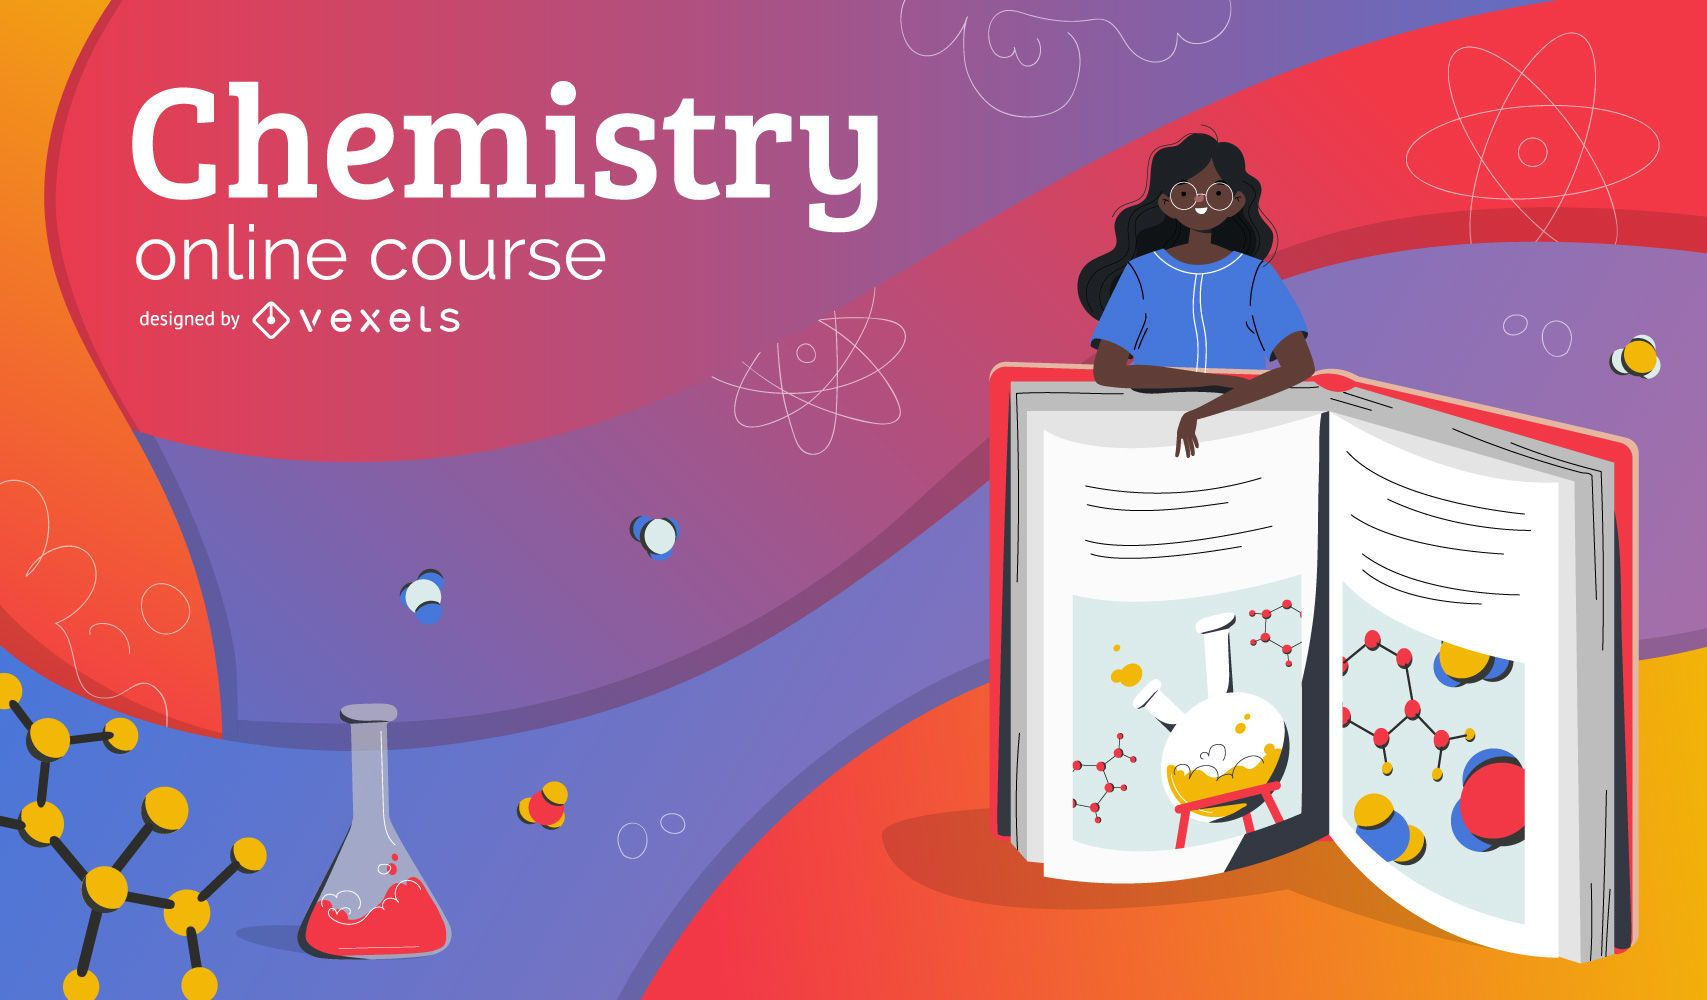 Chemistry online education cover